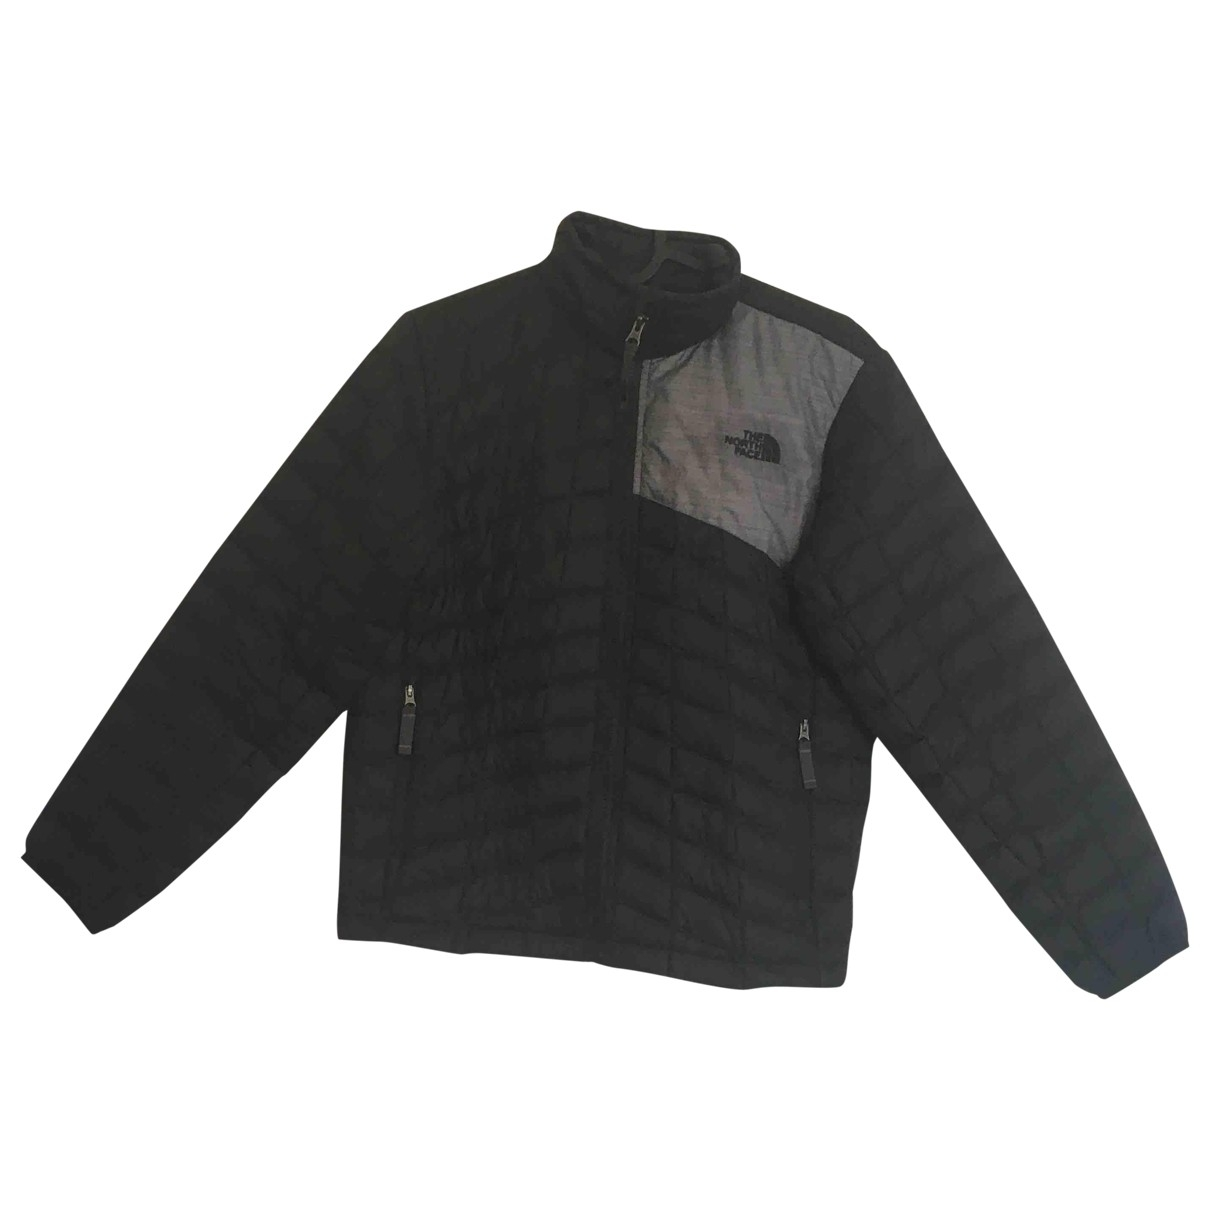 The North Face \N Black jacket & coat for Kids 12 years - XS FR